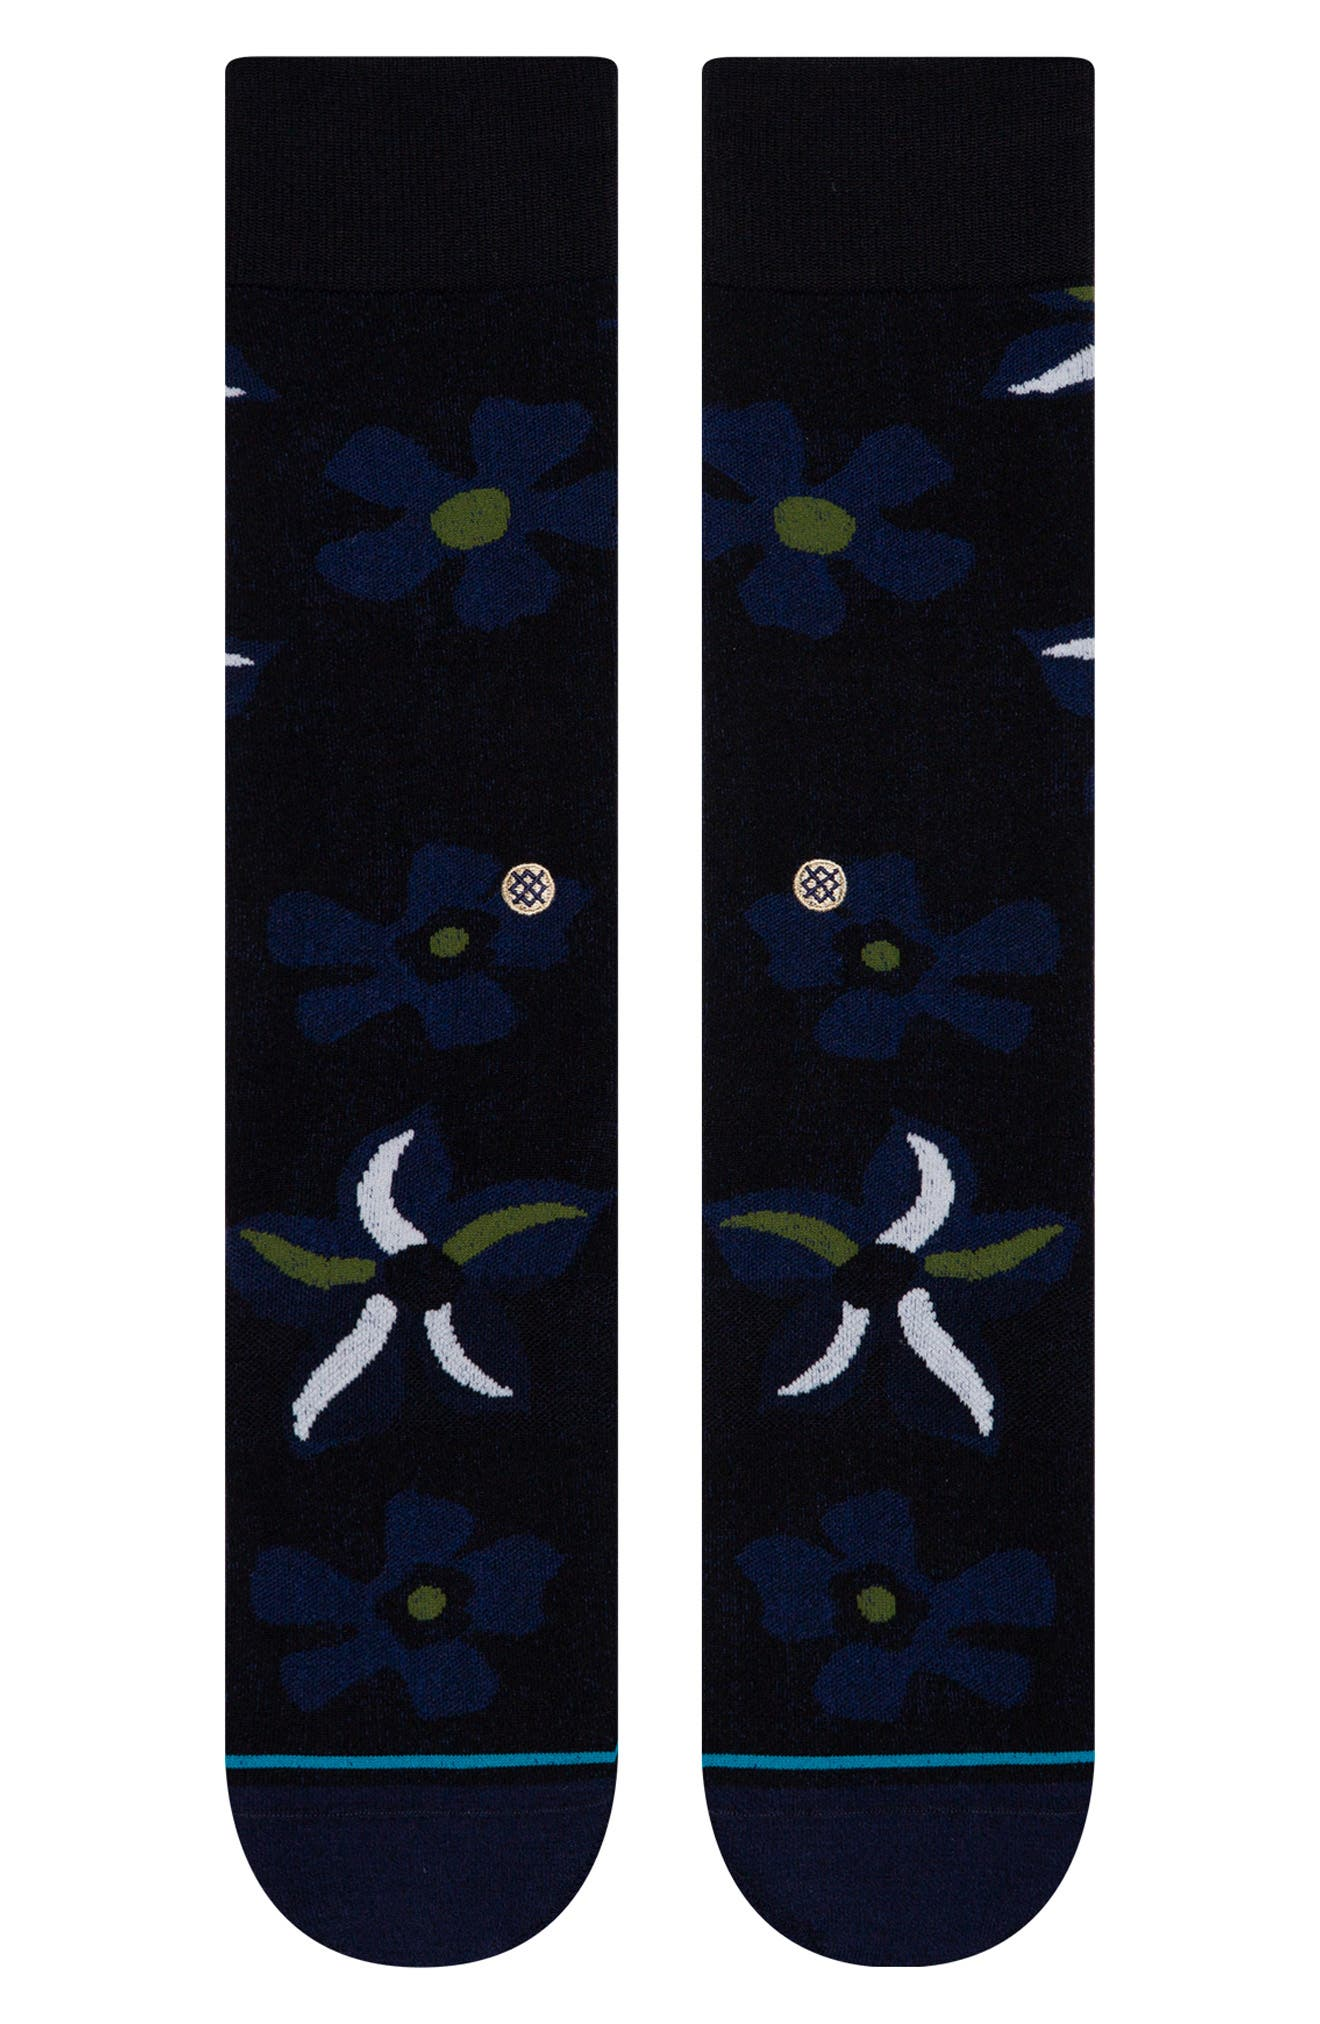 Image of Stance Sonic Bloom Socks